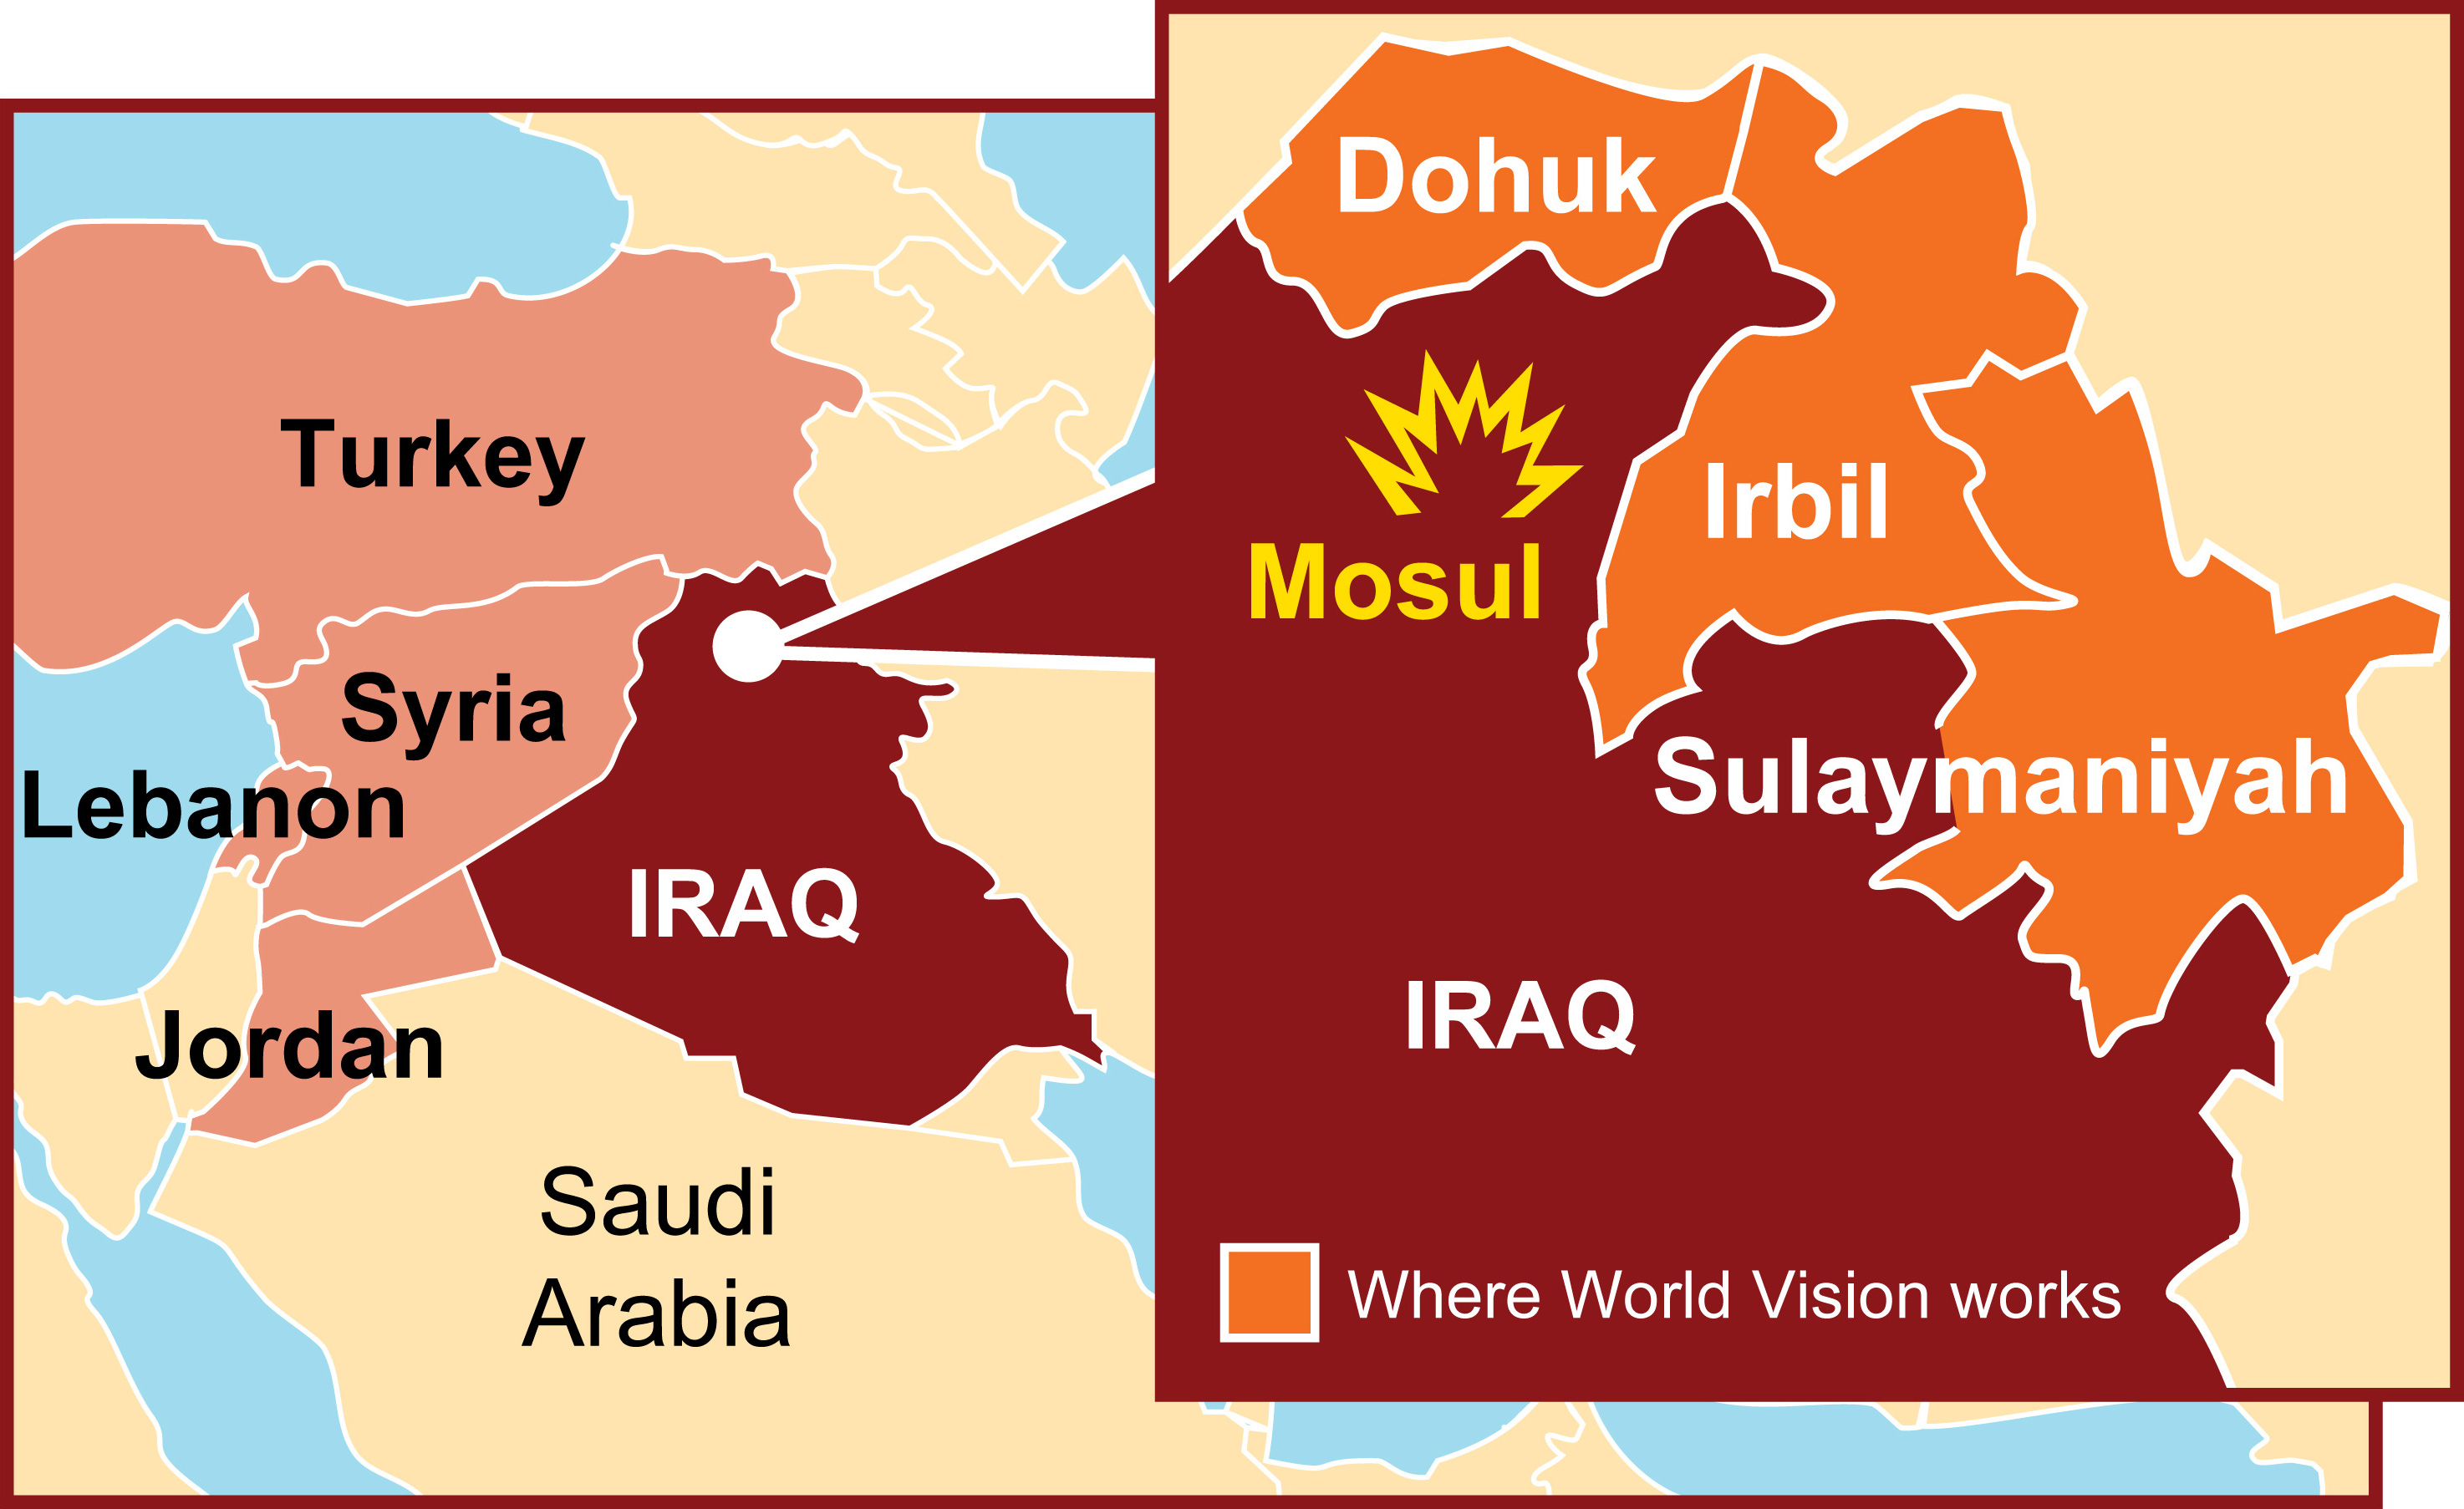 View map to see where World Vision is working in Iraq